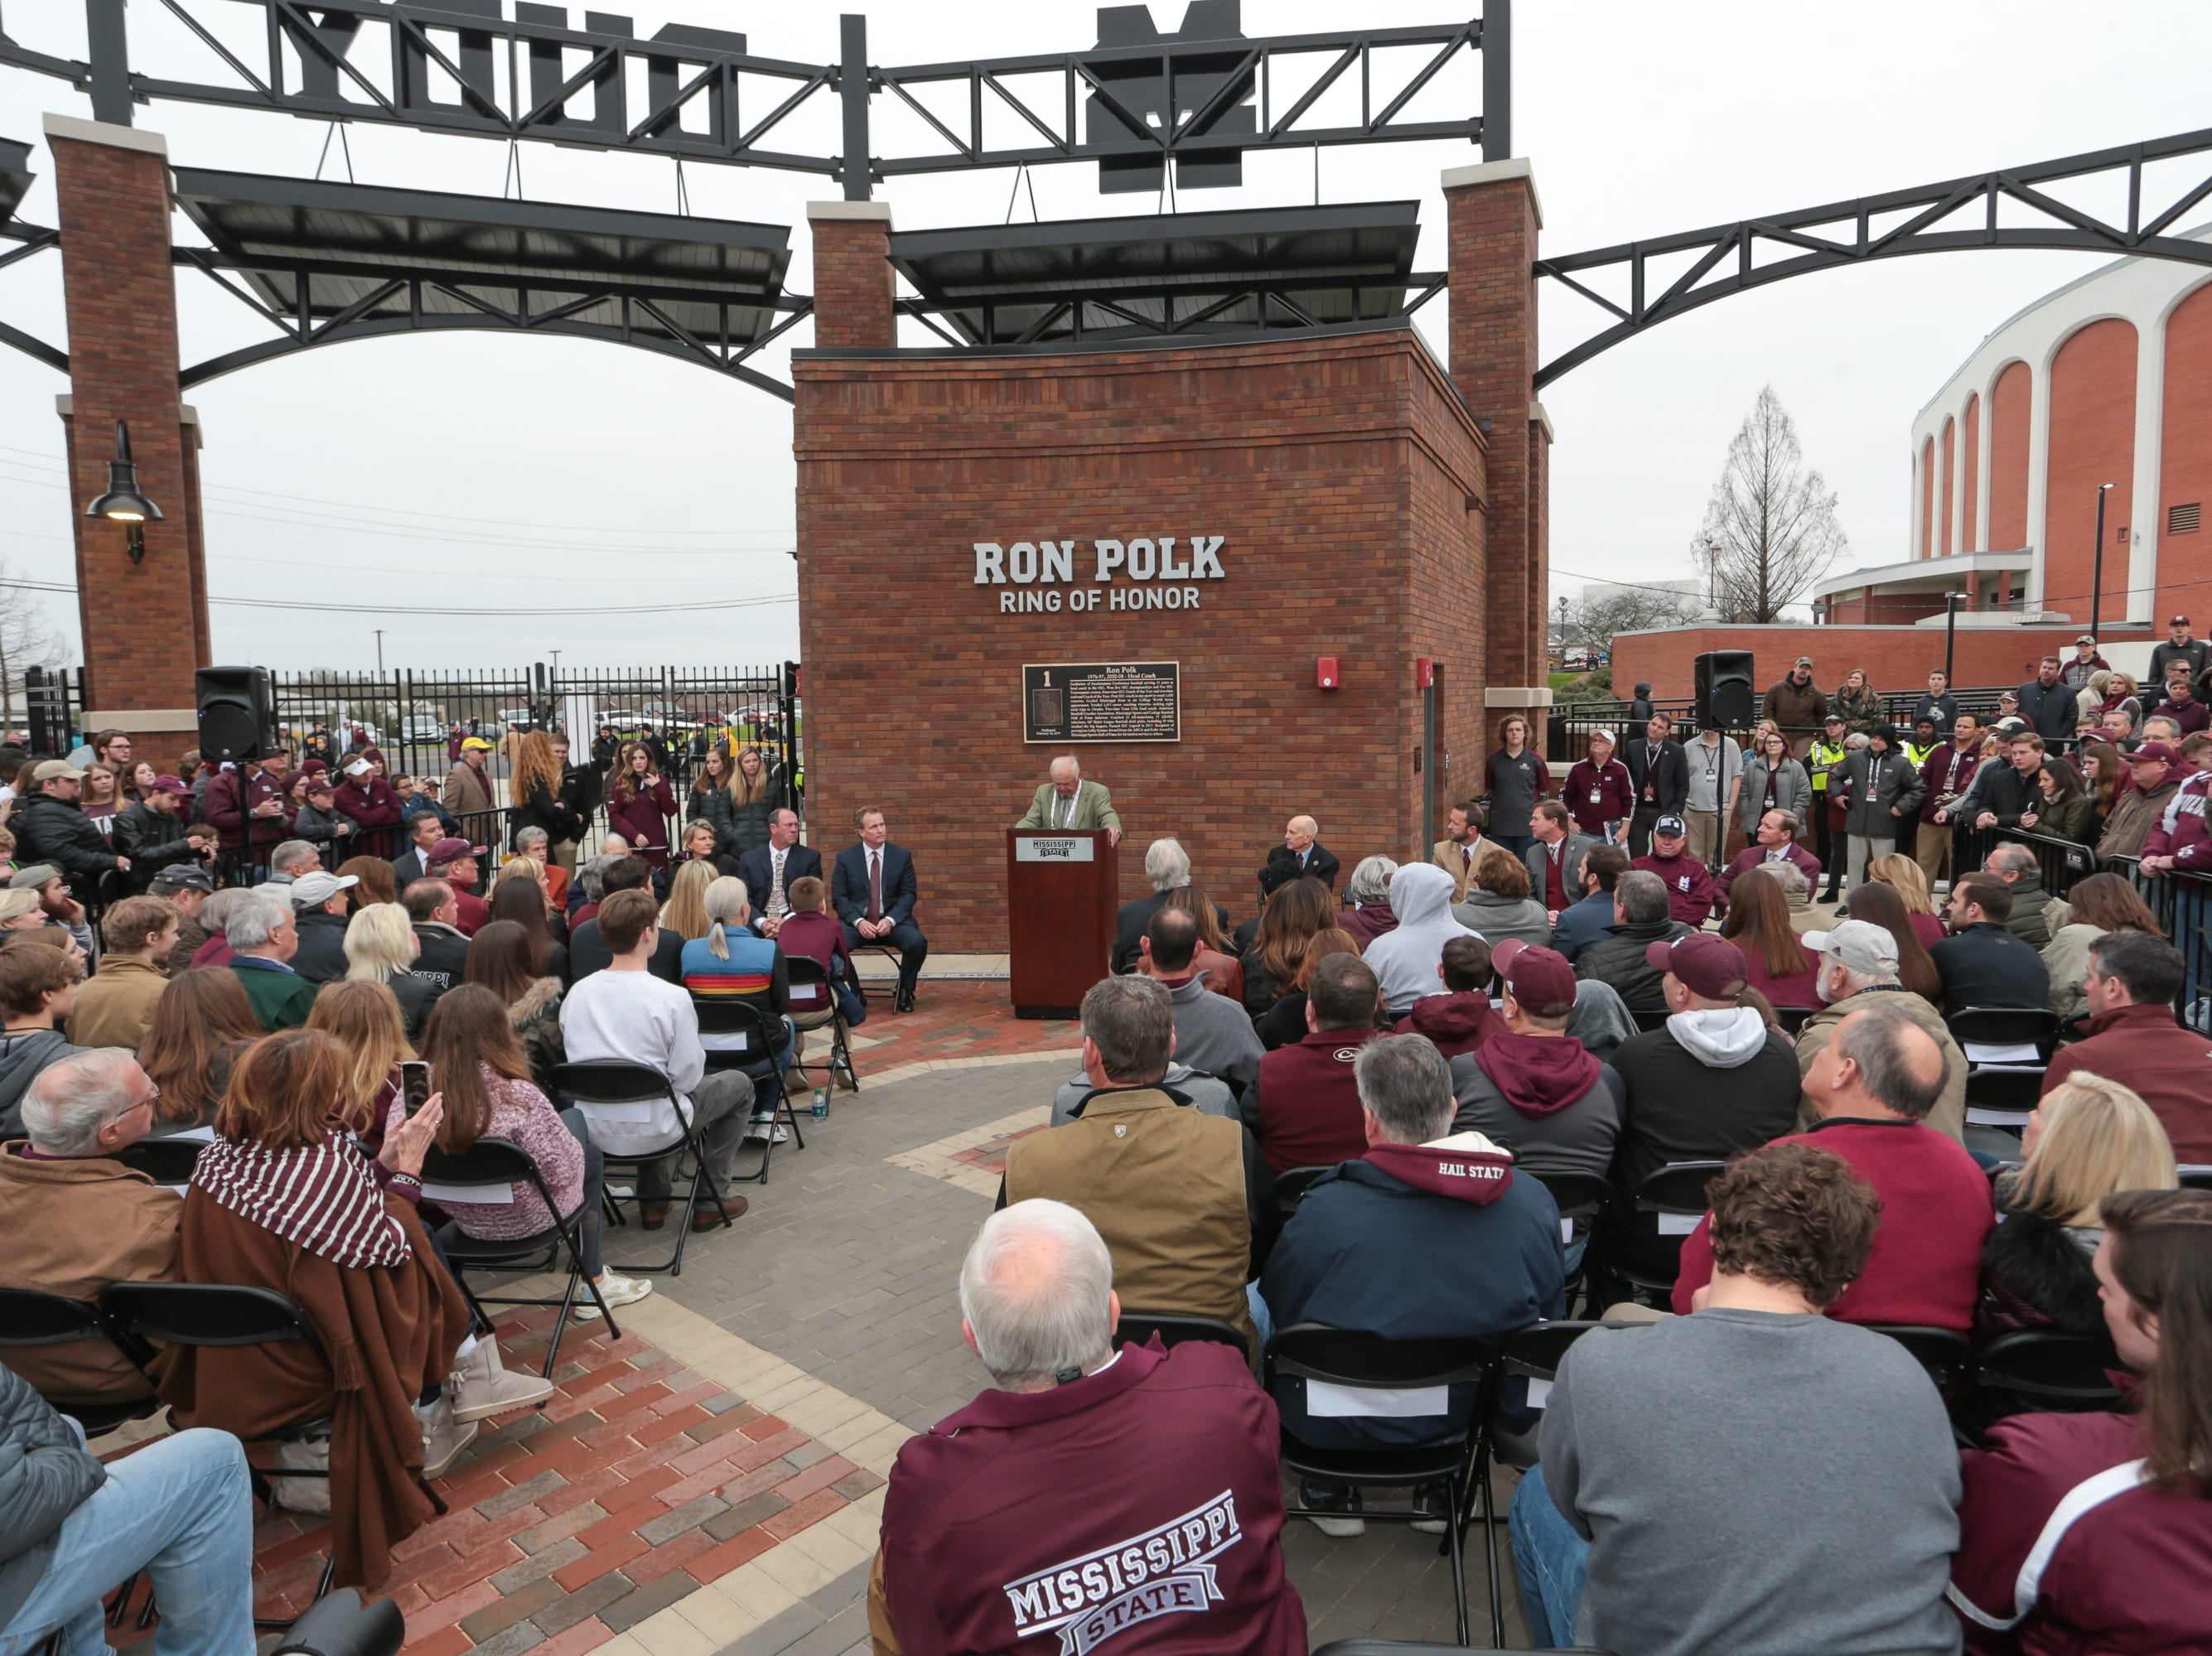 Former head coach Ron Polk speaks at the Ring Of Honor induction Ceremony. Mississippi State played Youngstown State on Saturday, February 16, 2019. Photo by Keith Warren